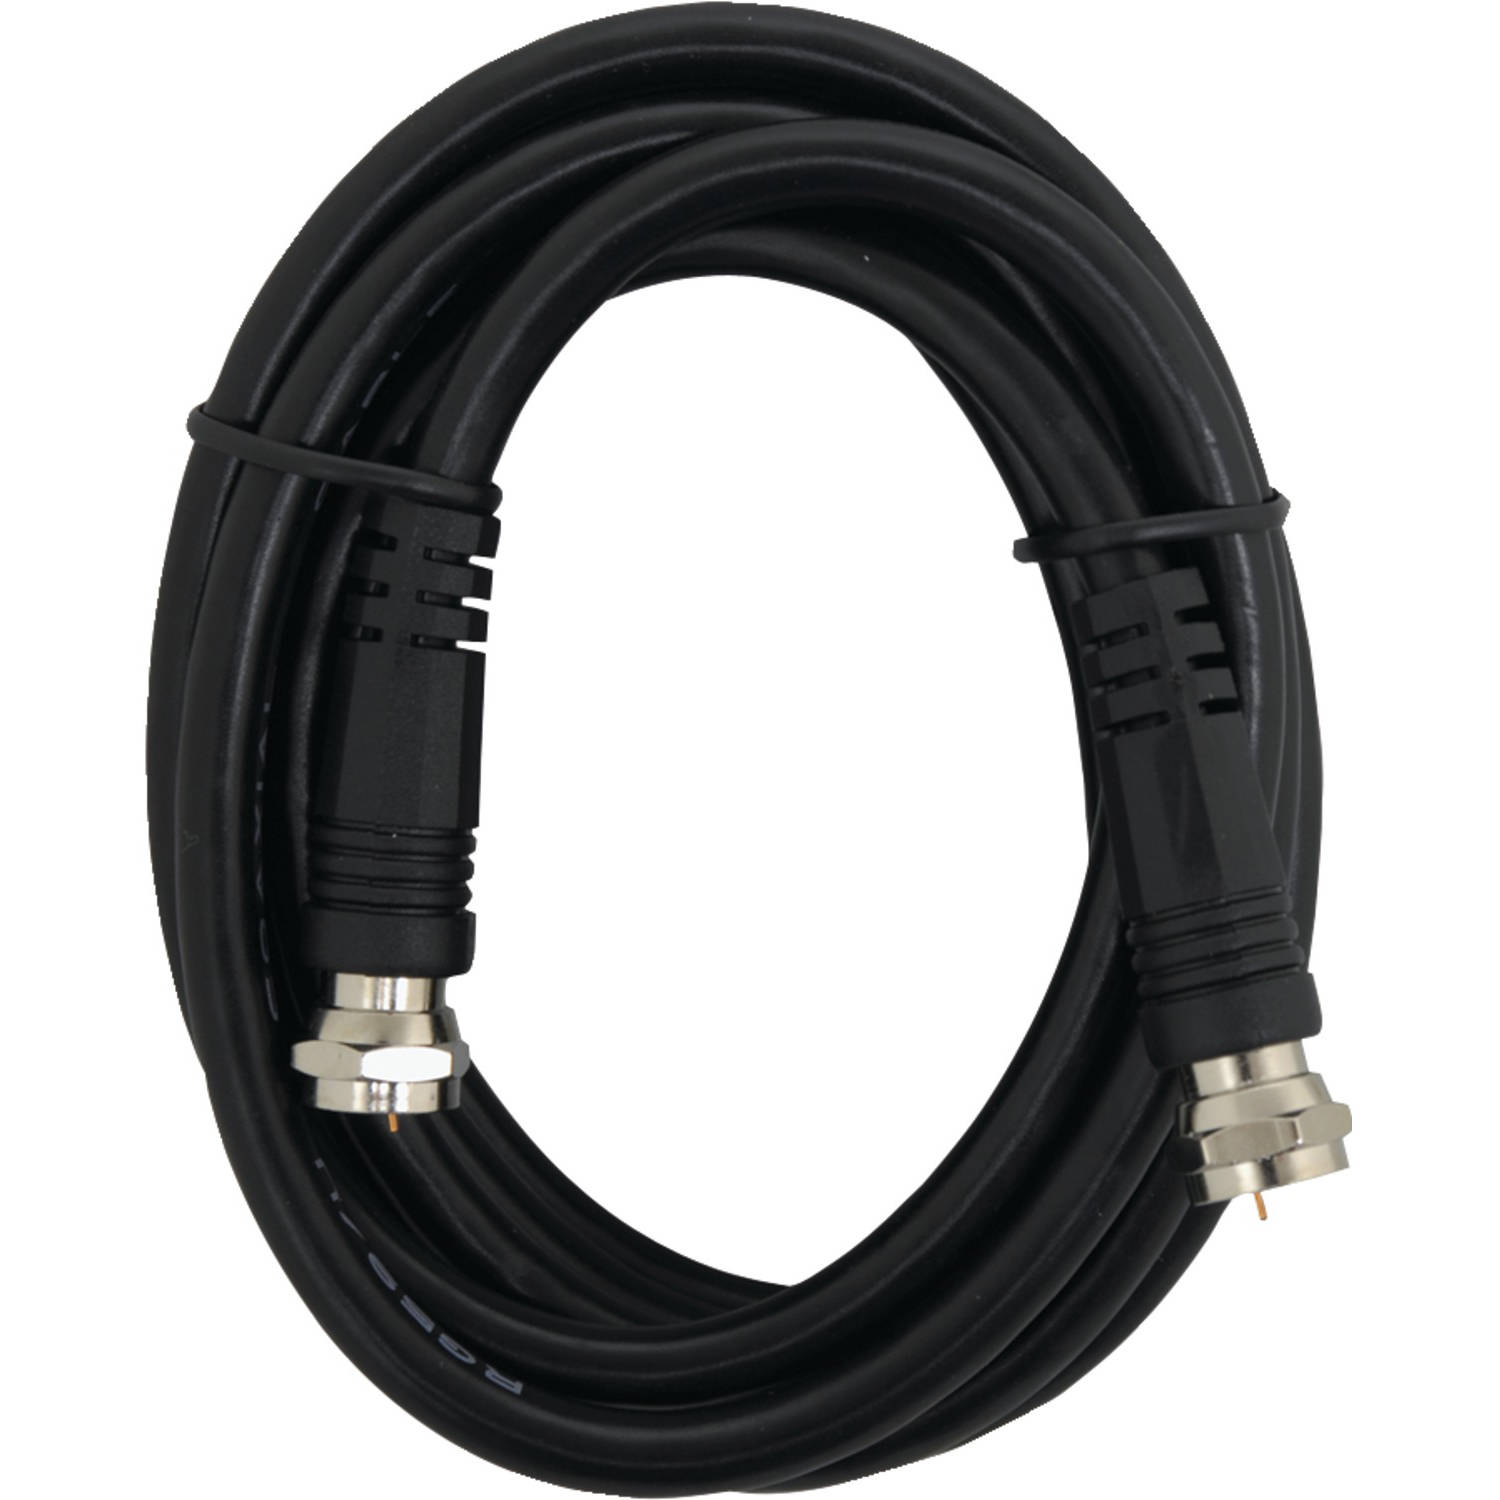 GE Av23217 RG59 Video Cable, 6'